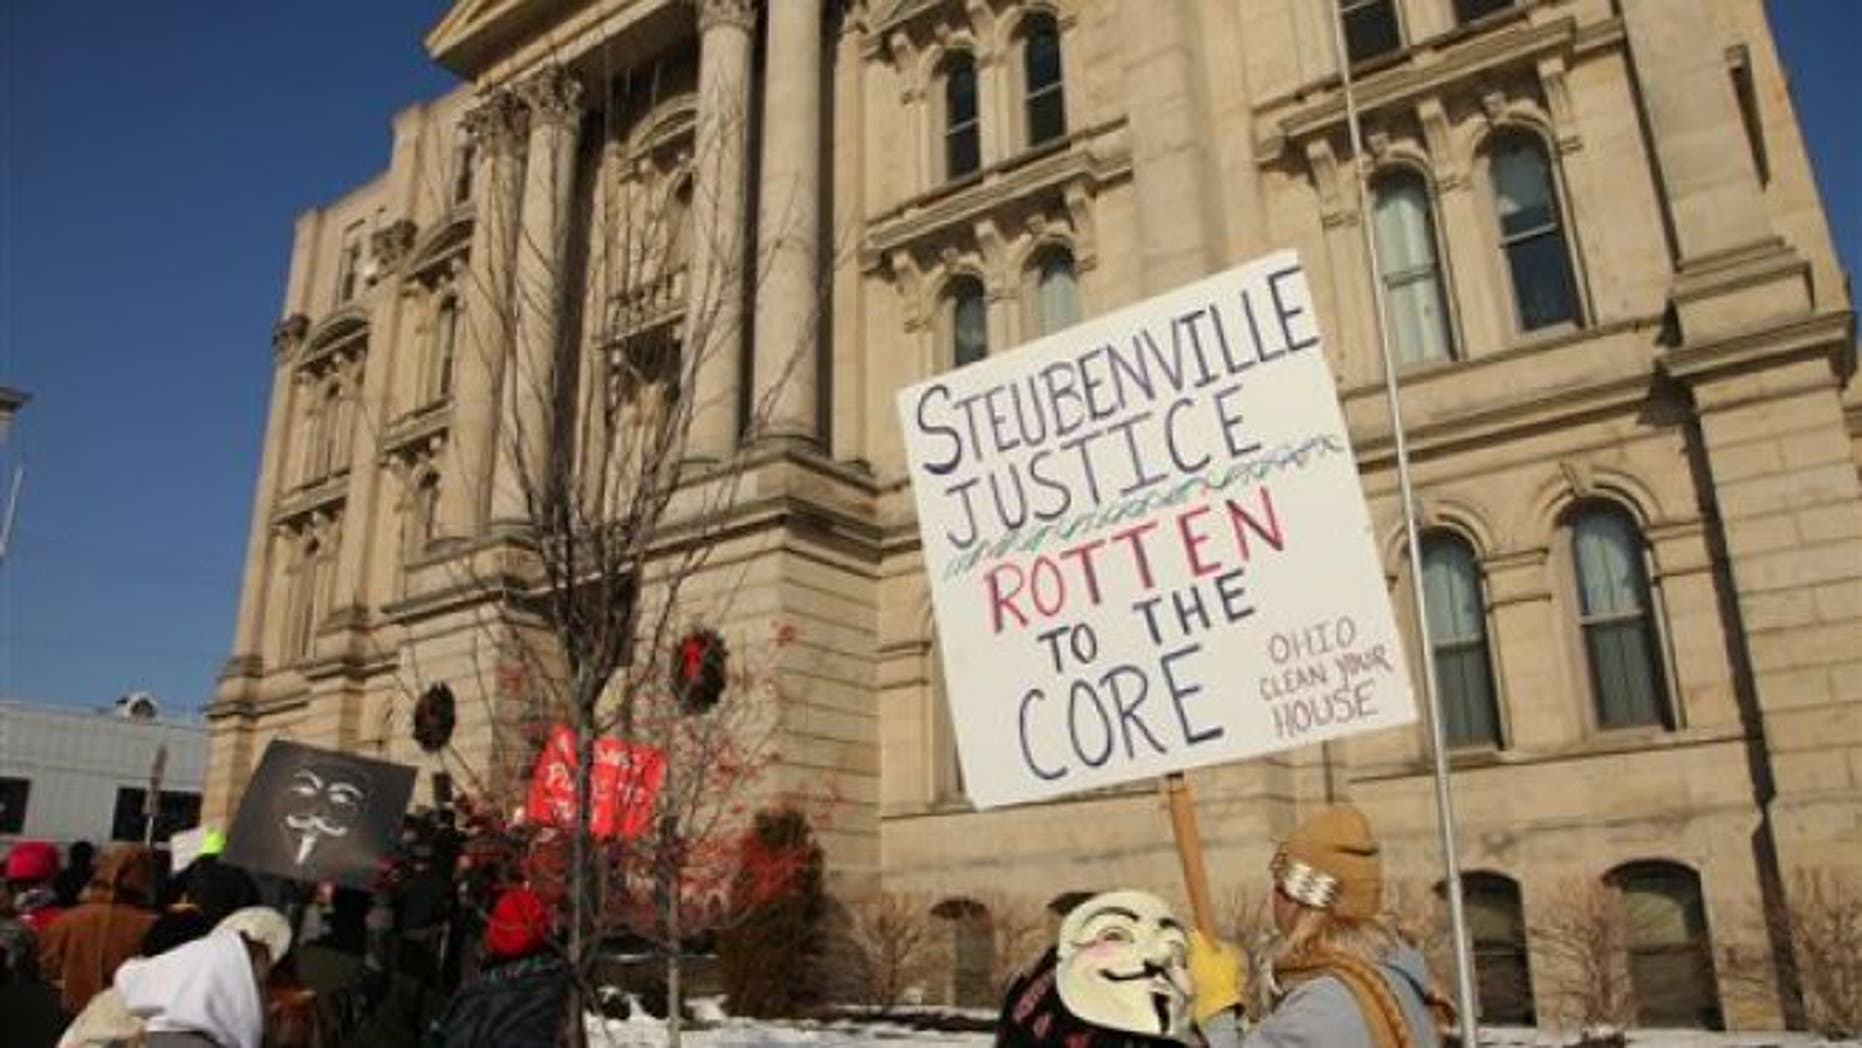 FILE: Jan. 5, 2013: Activists from the online group KnightSec and Anonymous protest at the Jefferson County Courthouse in Steubenville, Ohio, over what they contend is a cover-up in a case involving the alleged rape of a teenage girl by Steubenville High School student-athletes that reportedly occurred in 2012.